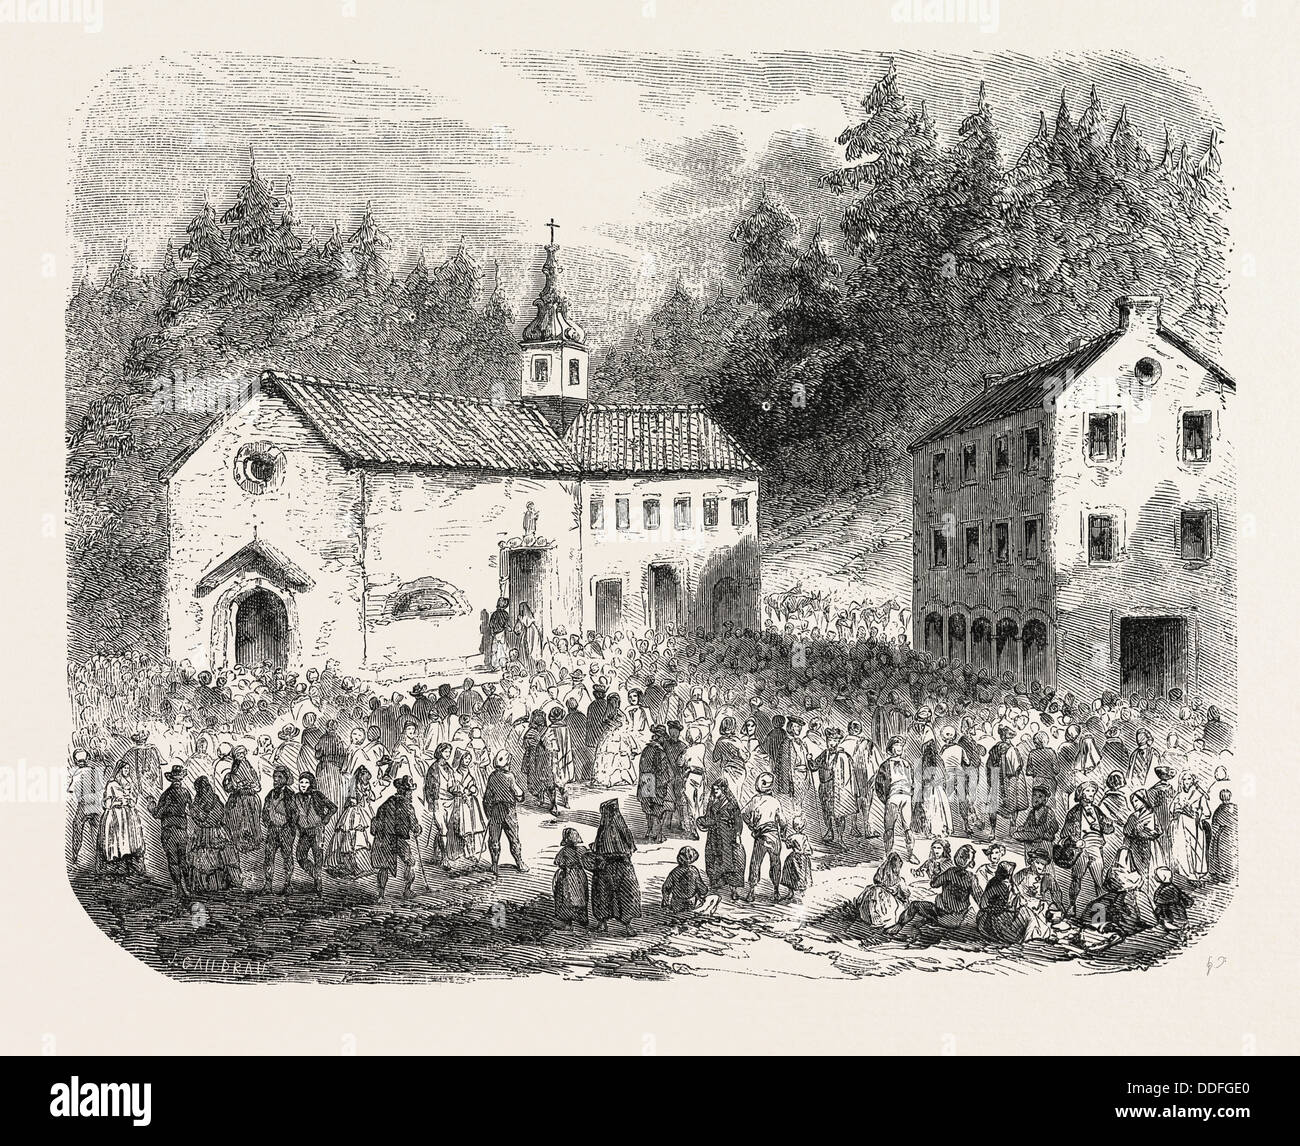 Fete of the Nativity of Our Lady: Pilgrimage to Our Lady of Font-Romeu (Pyrenees-Orientales), France, 1855. Engraving - Stock Image